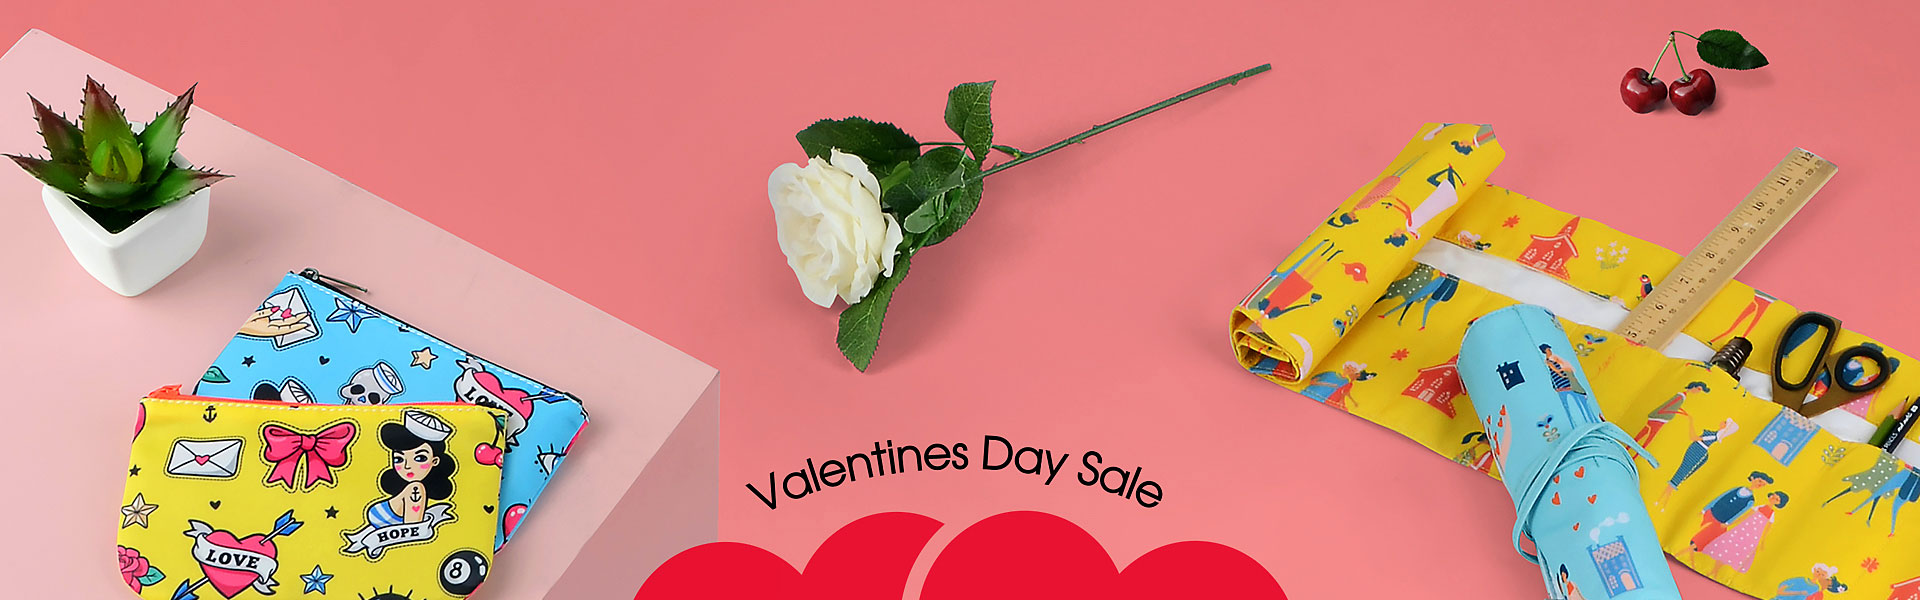 Valentine's Day Sale Buy 1 Free 1 on ArtsCow!